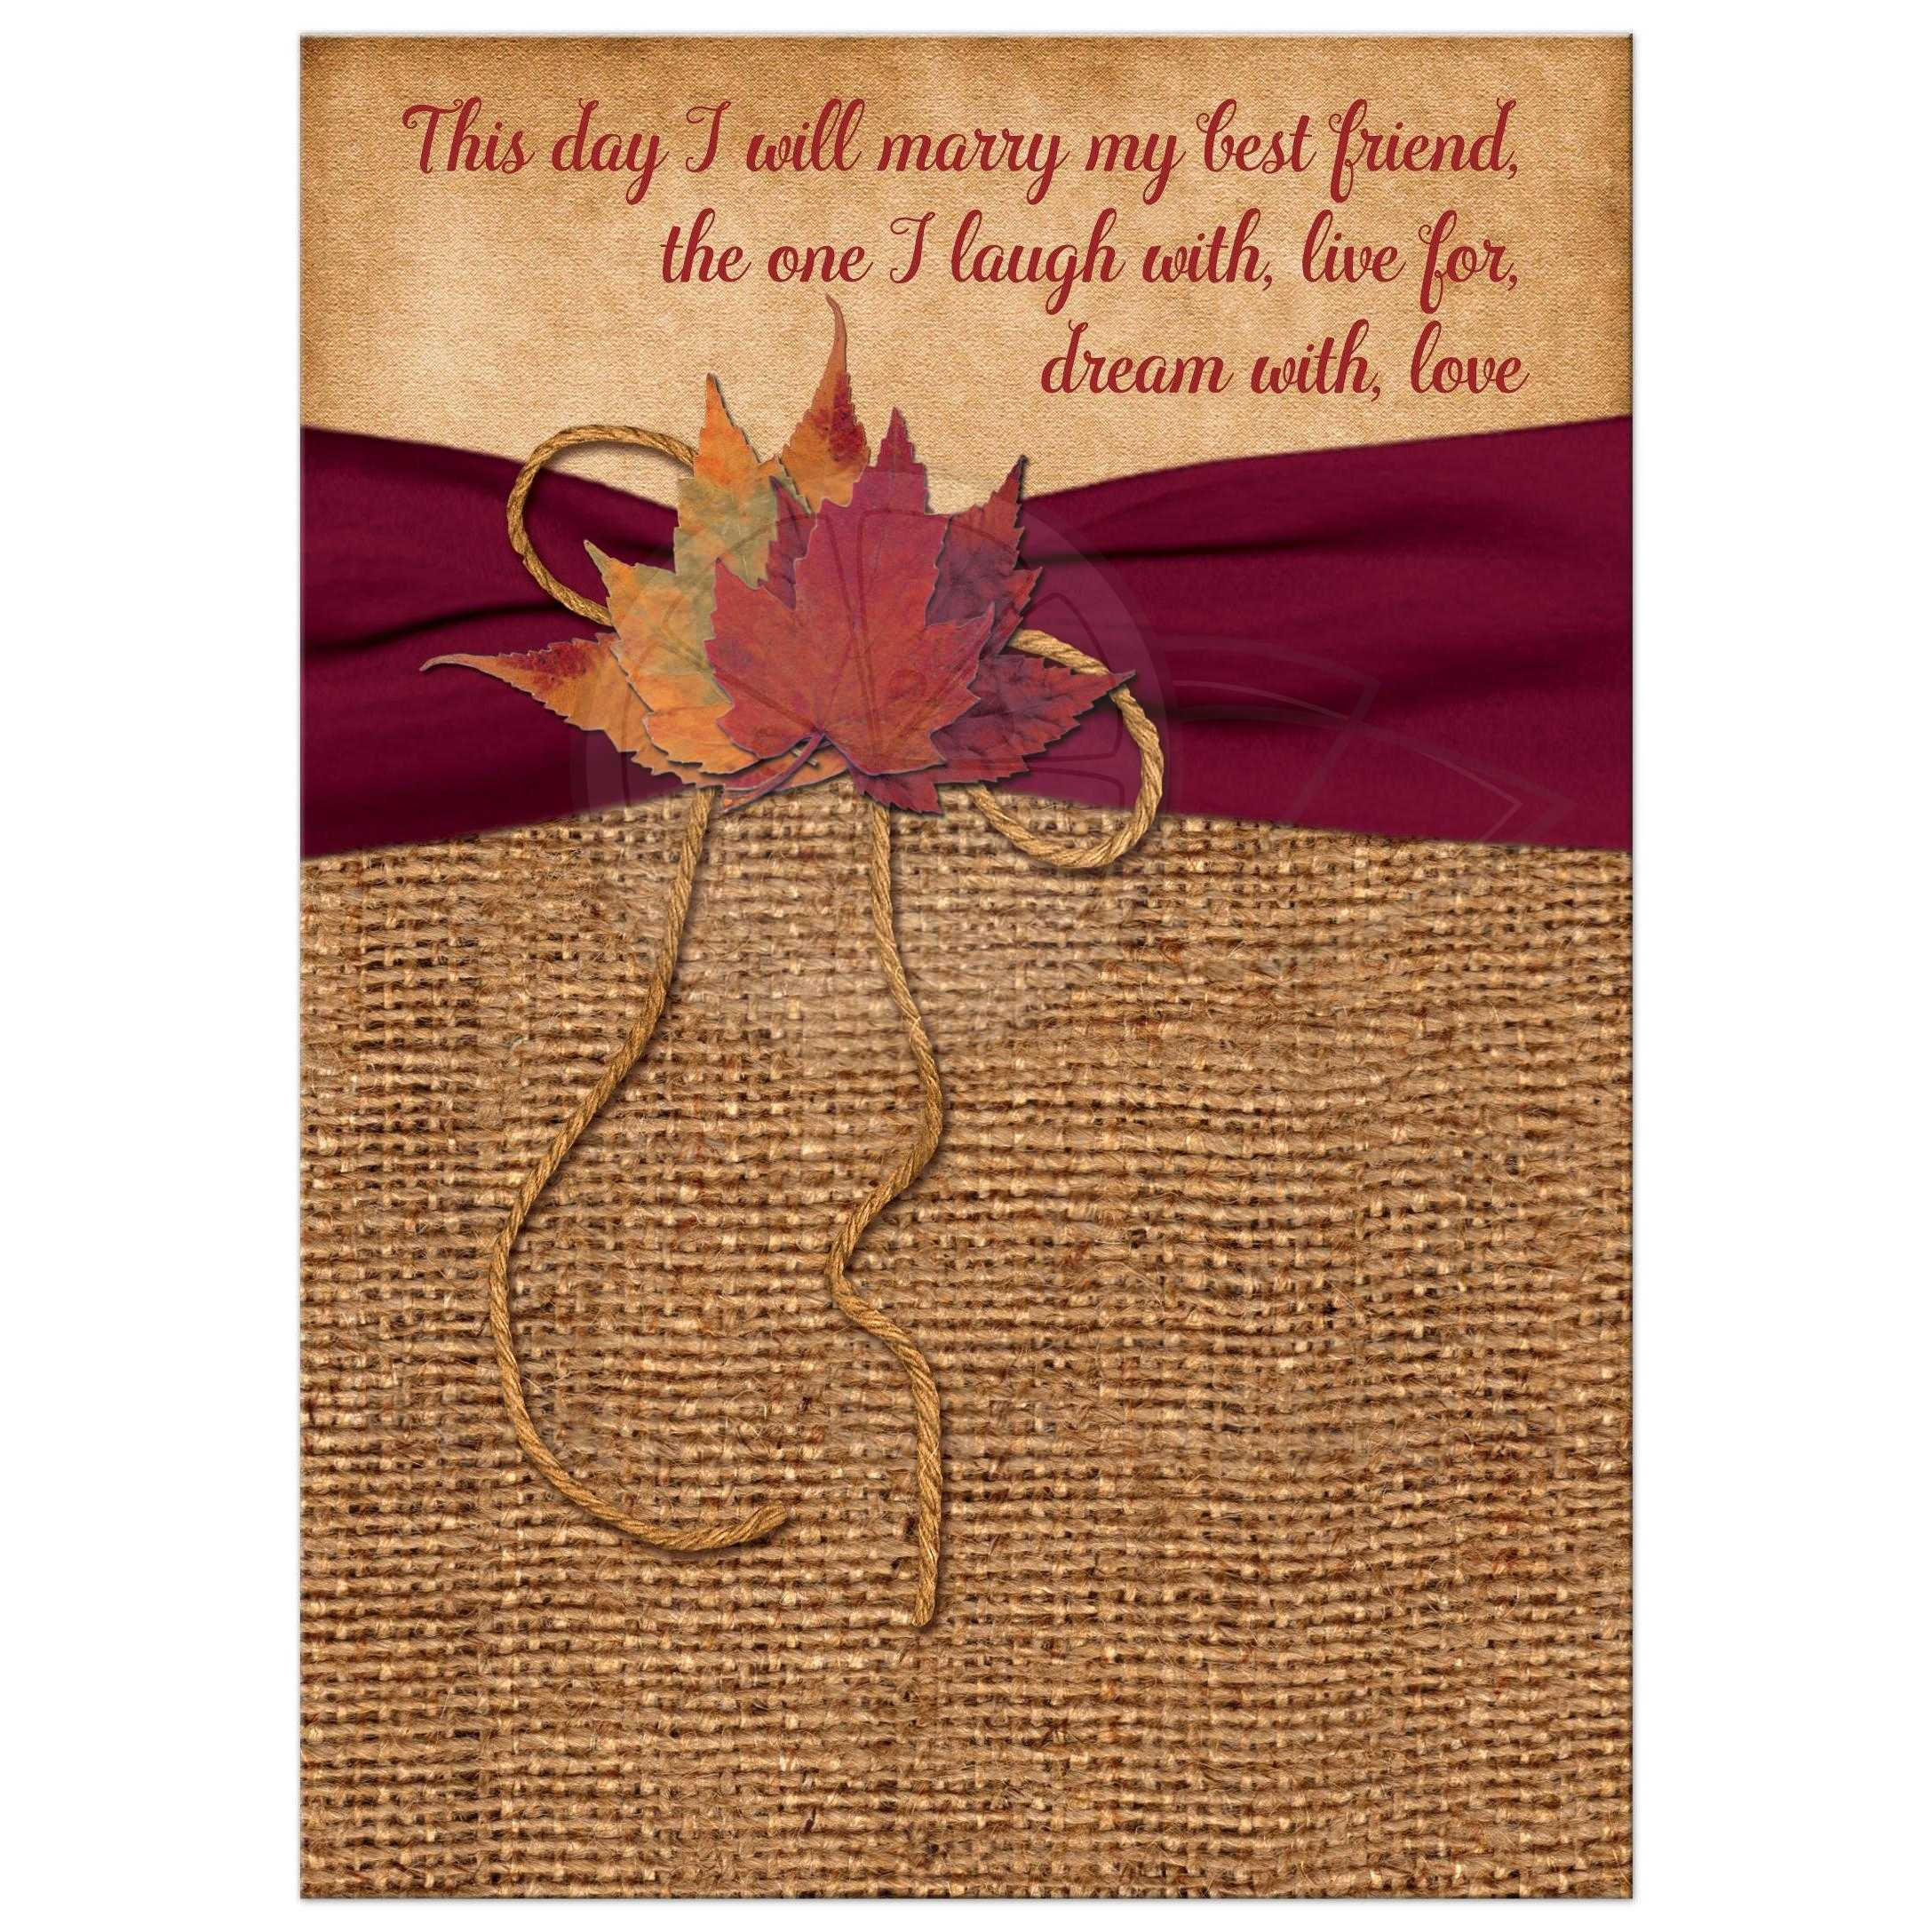 Burlap Wedding Invitations With A Wine Ribbon Golden Twine Bow And Autumn Leaves: Rustic Wedding Invitations Fall Colors At Reisefeber.org